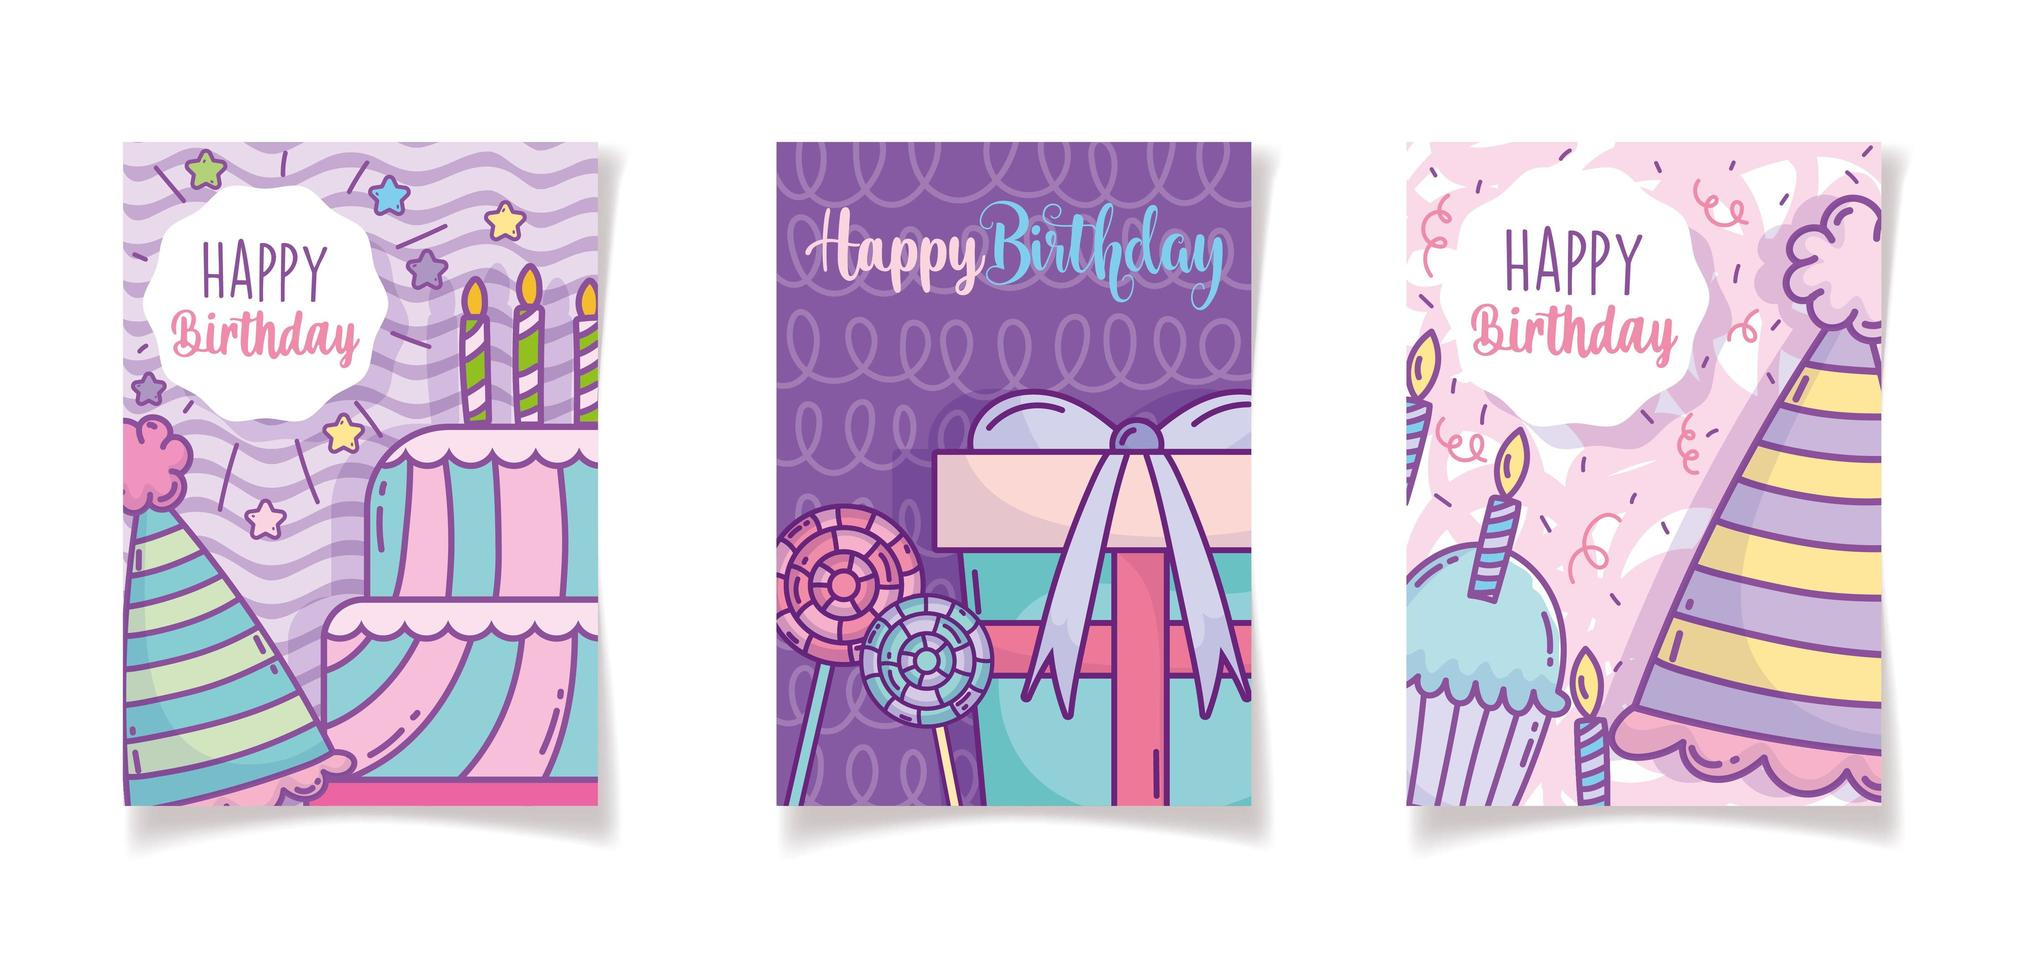 Birthday greeting cards template vector